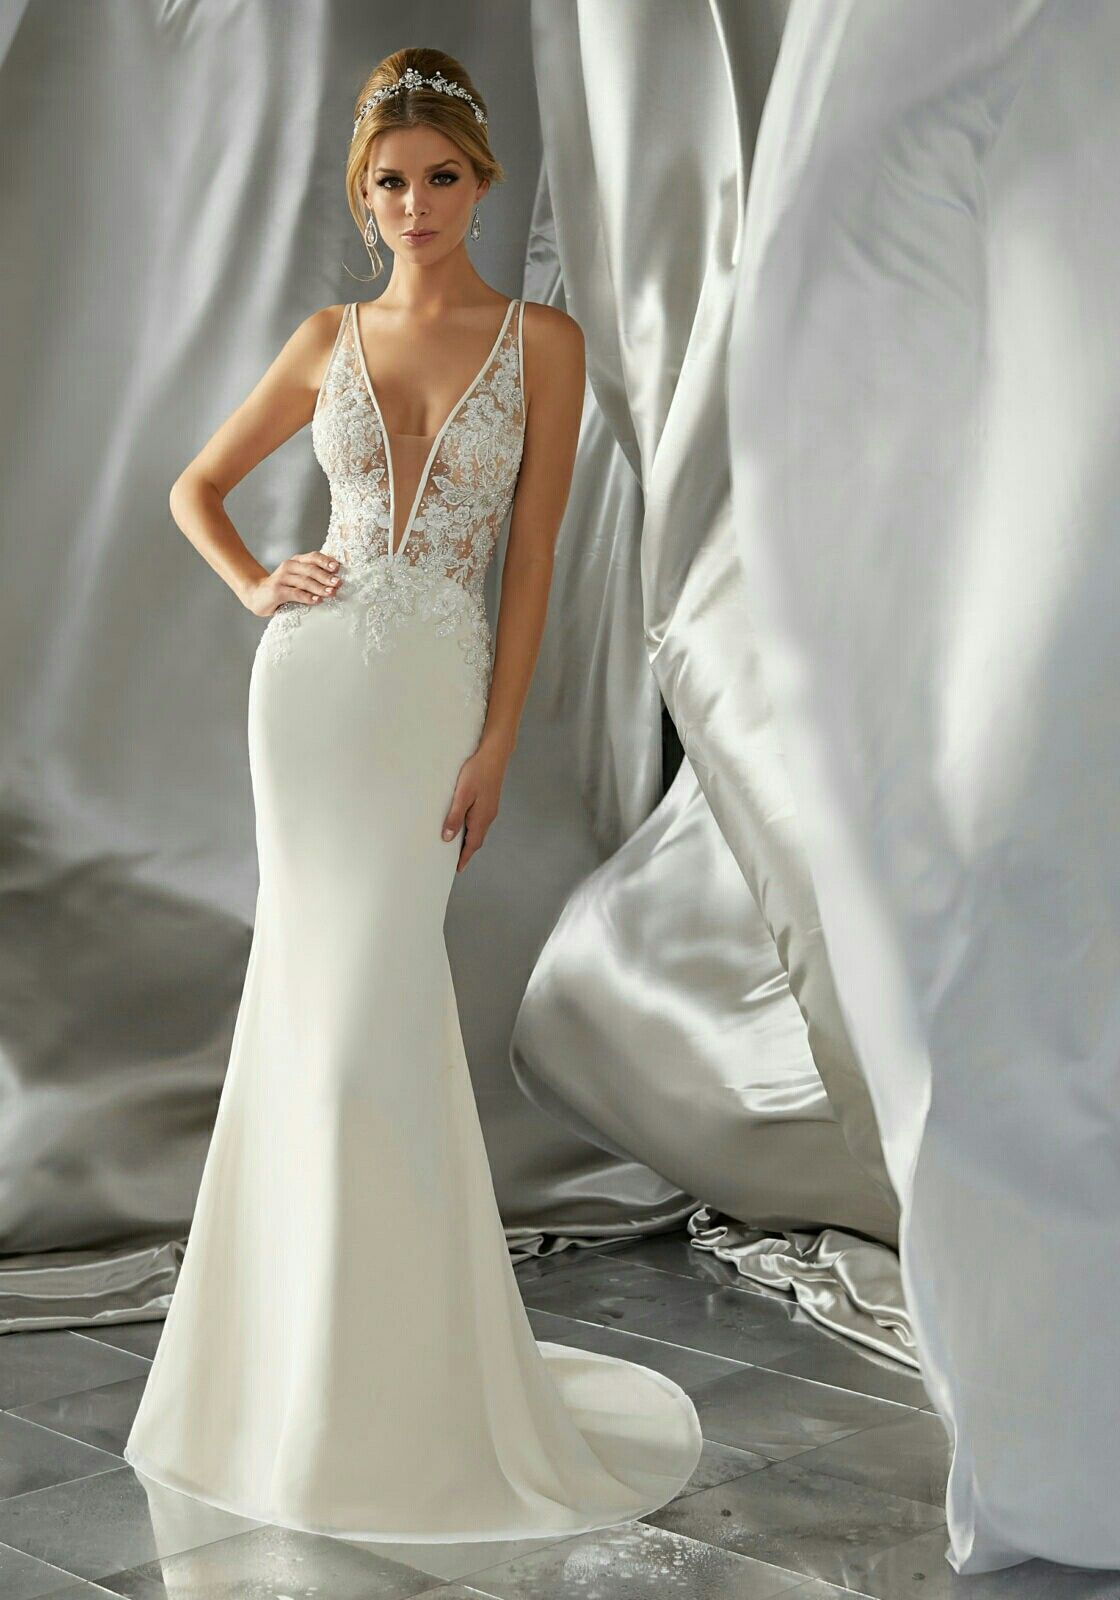 Pin by catherine cox on wedding dresses pinterest wedding dress